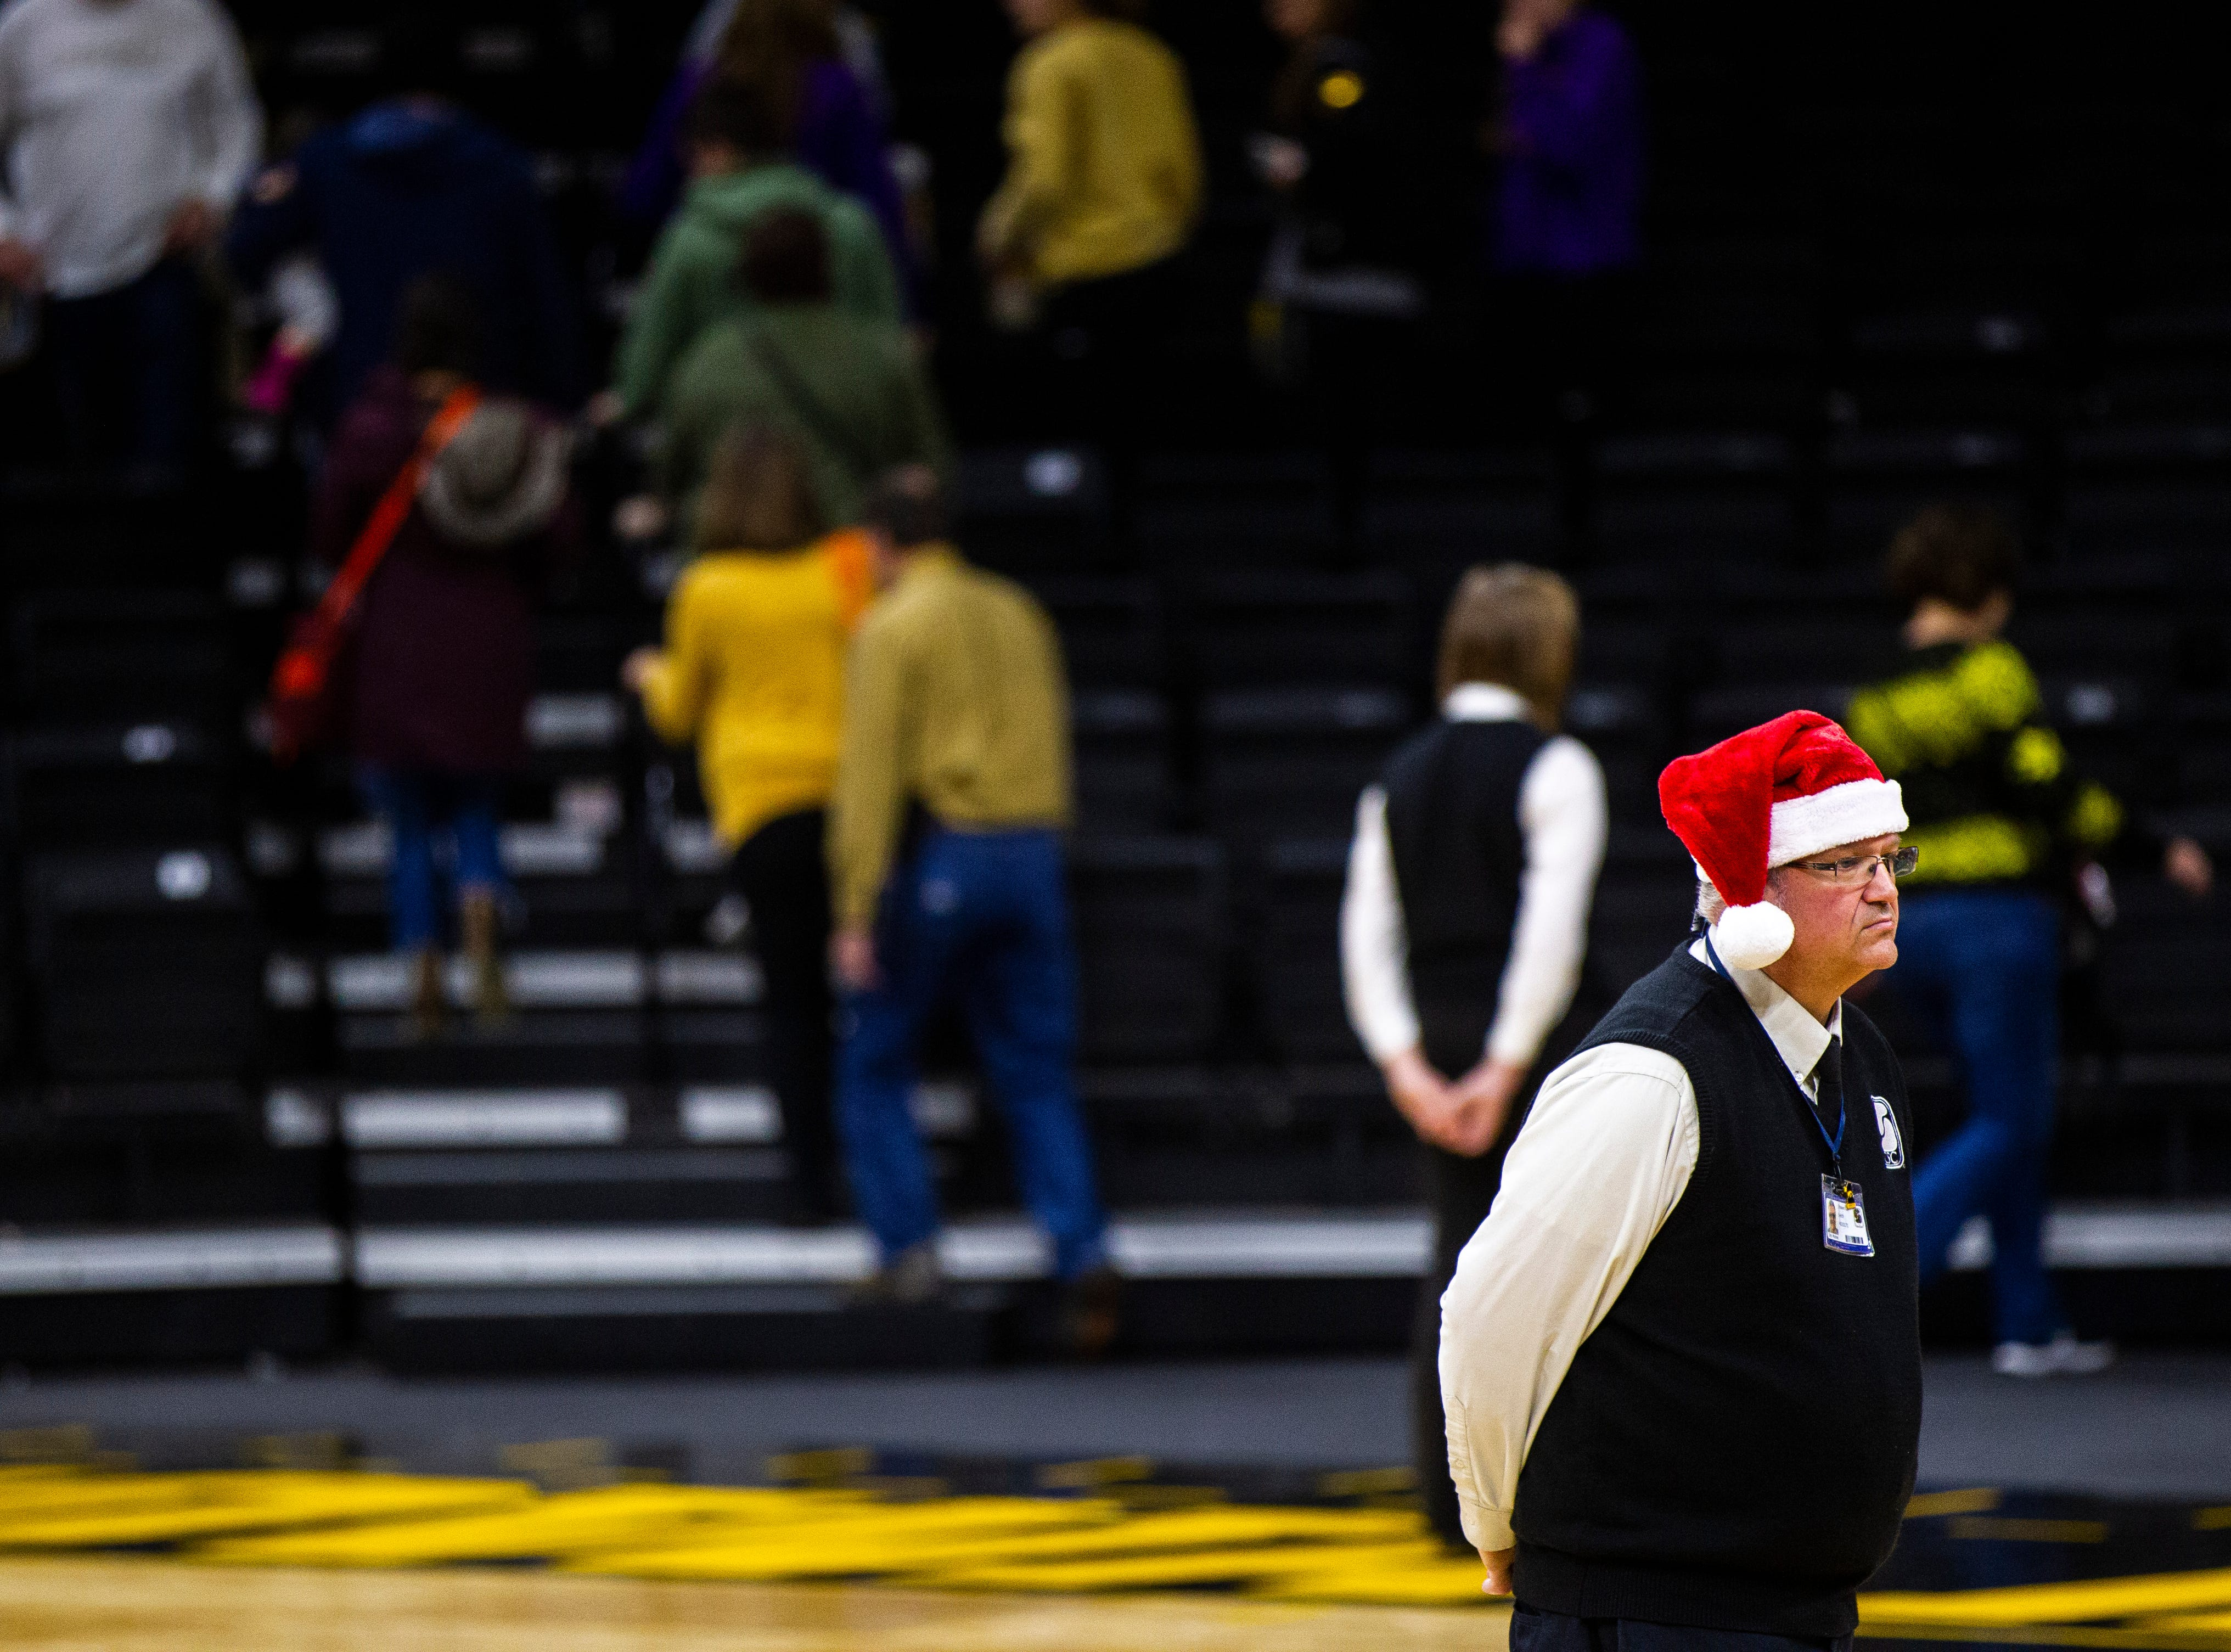 A CSC Security guard stands on the court after a NCAA women's basketball game on Sunday, Dec. 16, 2018, at Carver-Hawkeye Arena in Iowa City.